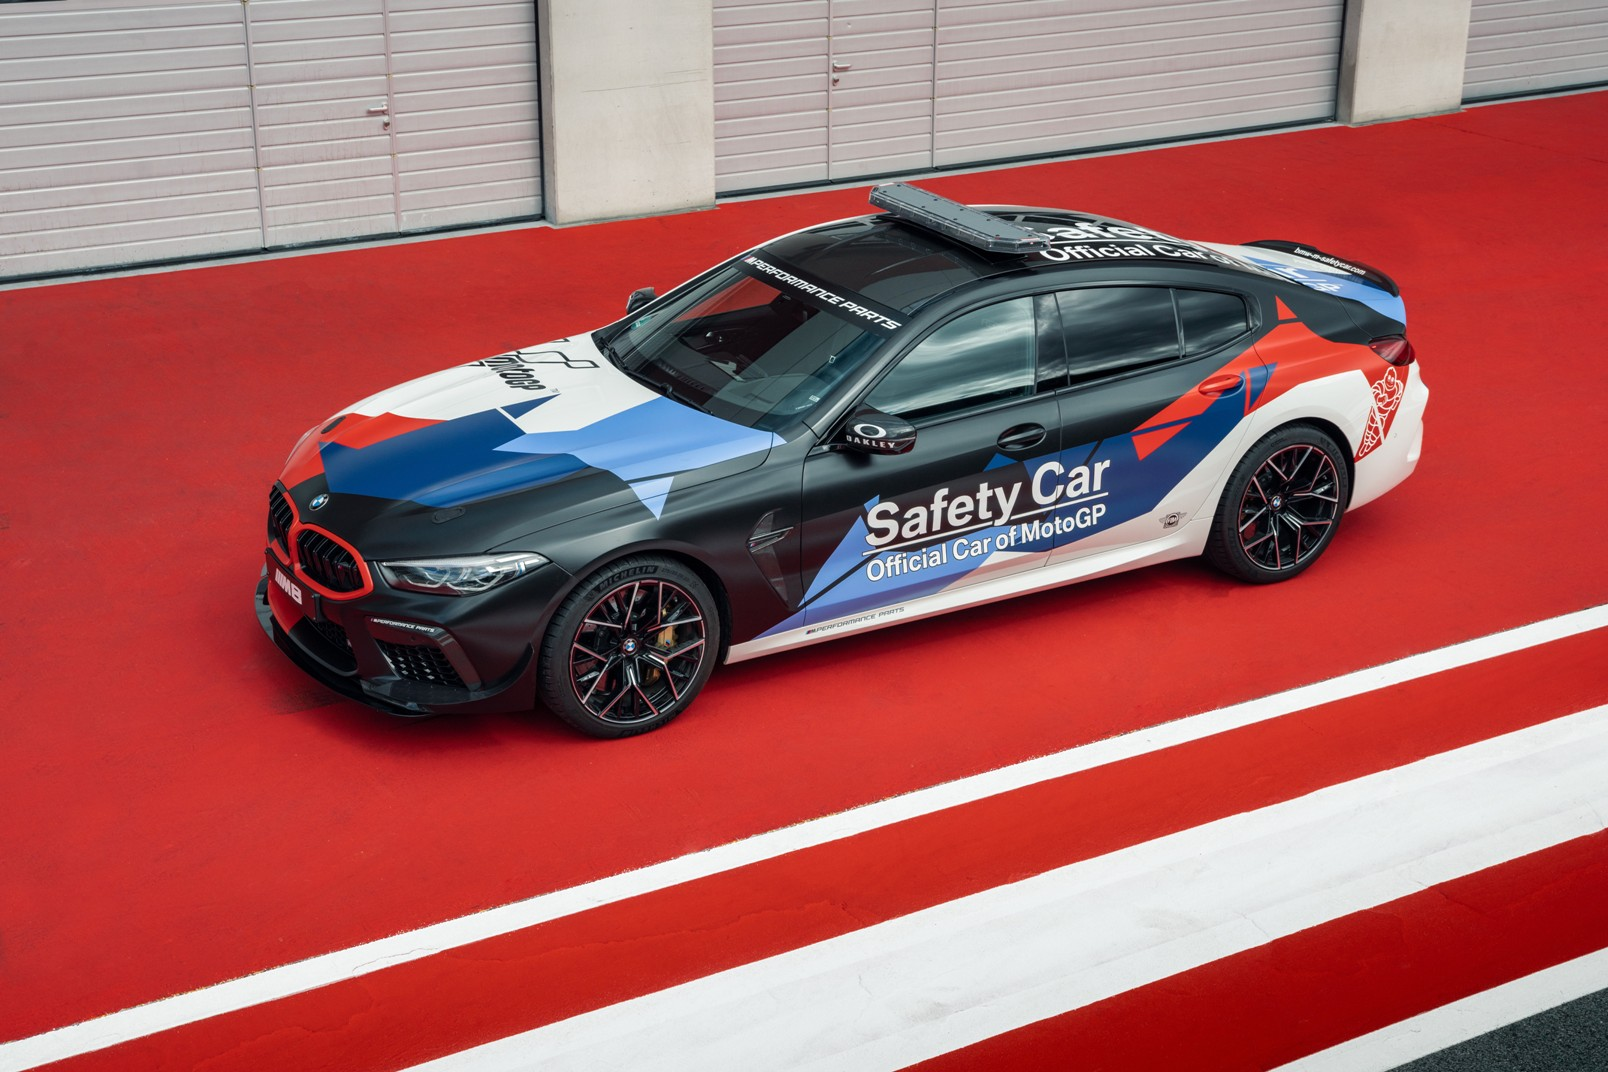 Bmw M8 Gran Coupe Safety Car (8)